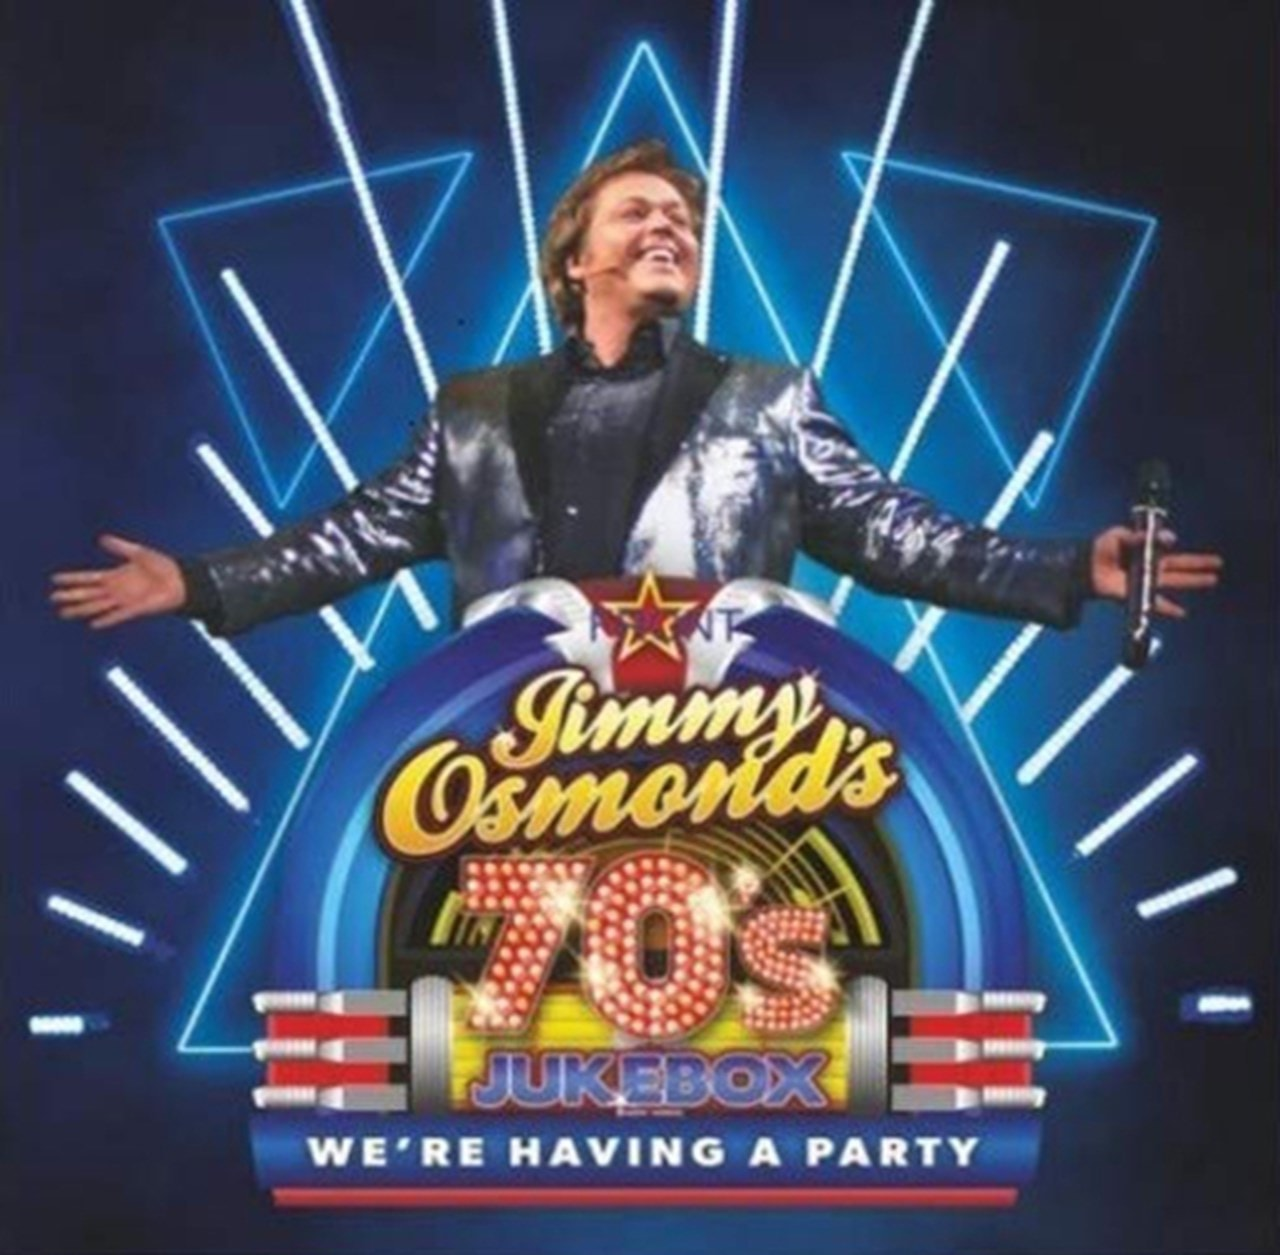 Jimmy Osmond's 70s Jukebox: We're Having a Party - 2